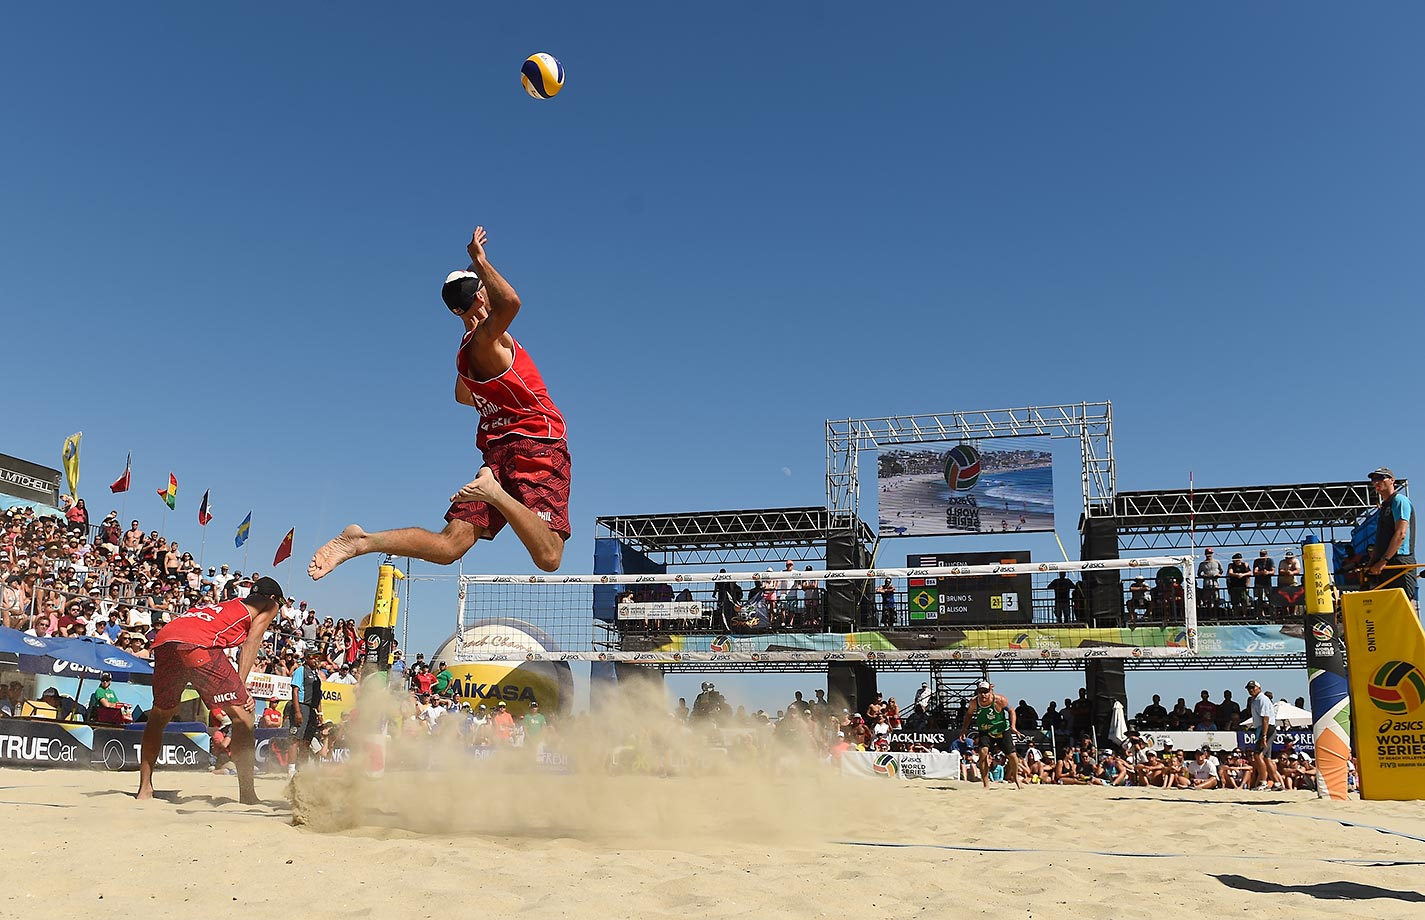 "Phil Dalhausser is already pretty darn tall (6'9"") and looks twice that as he jump serves in the final."